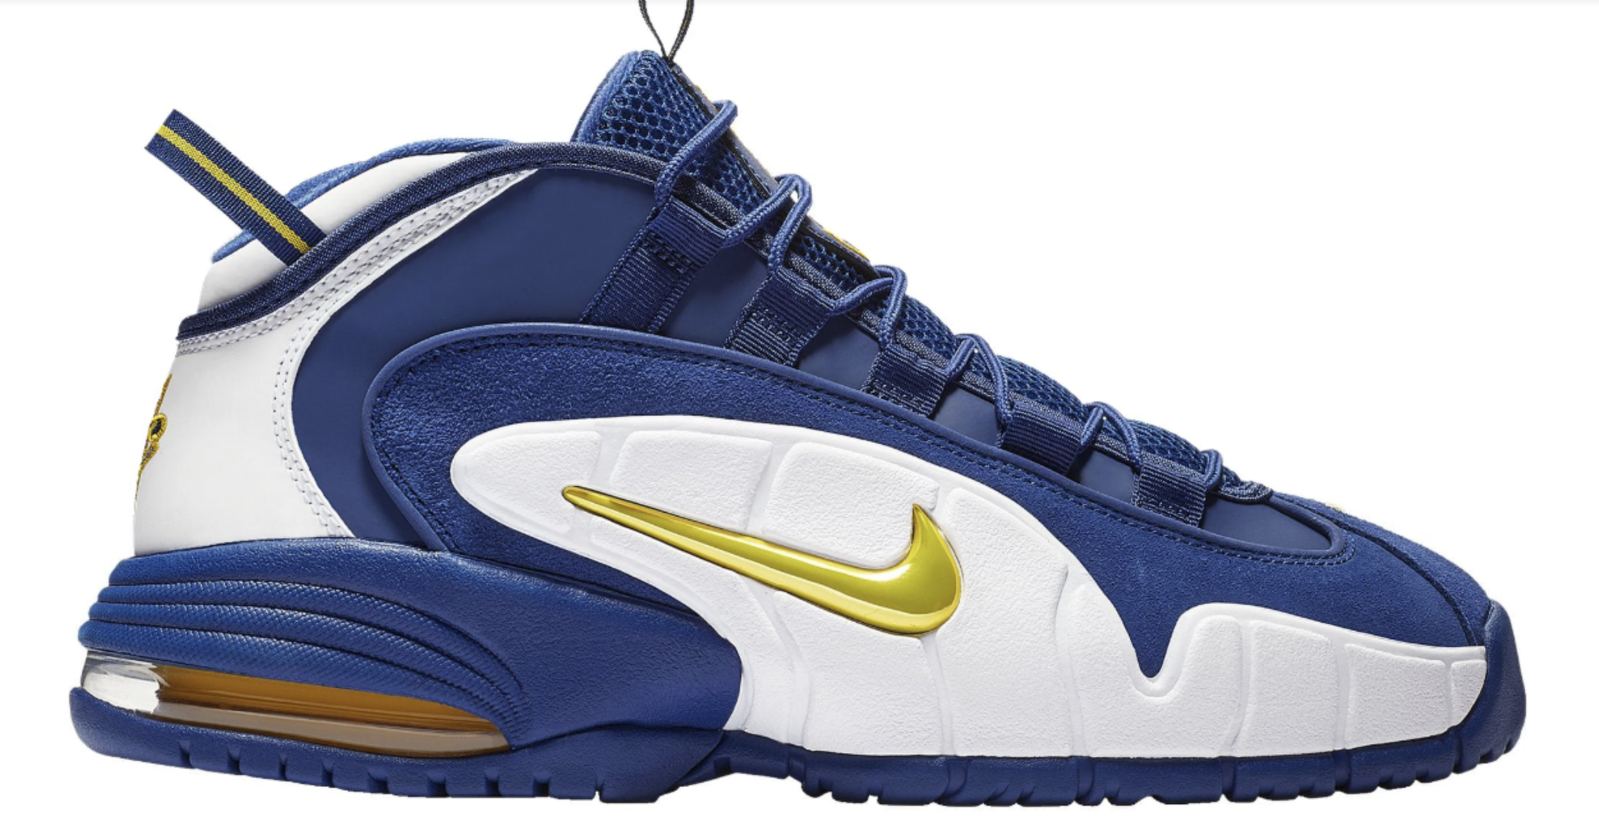 New NIKE AIR MAX PENNY 85153401 MEN'S Deep Royal bluee yellow White shoes c1